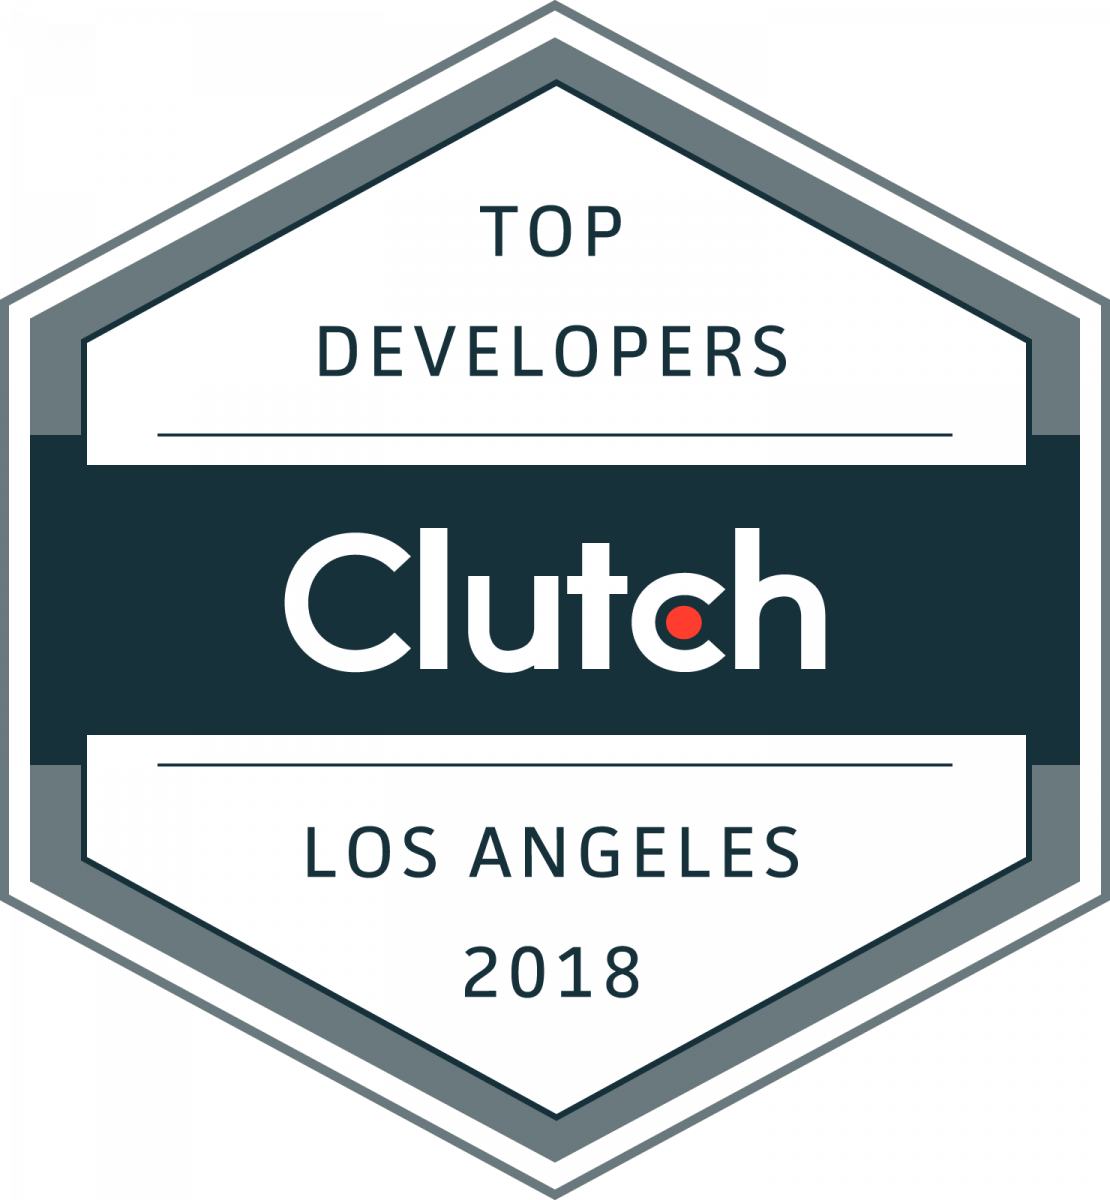 Top Developers Los Angeles Badge 2018